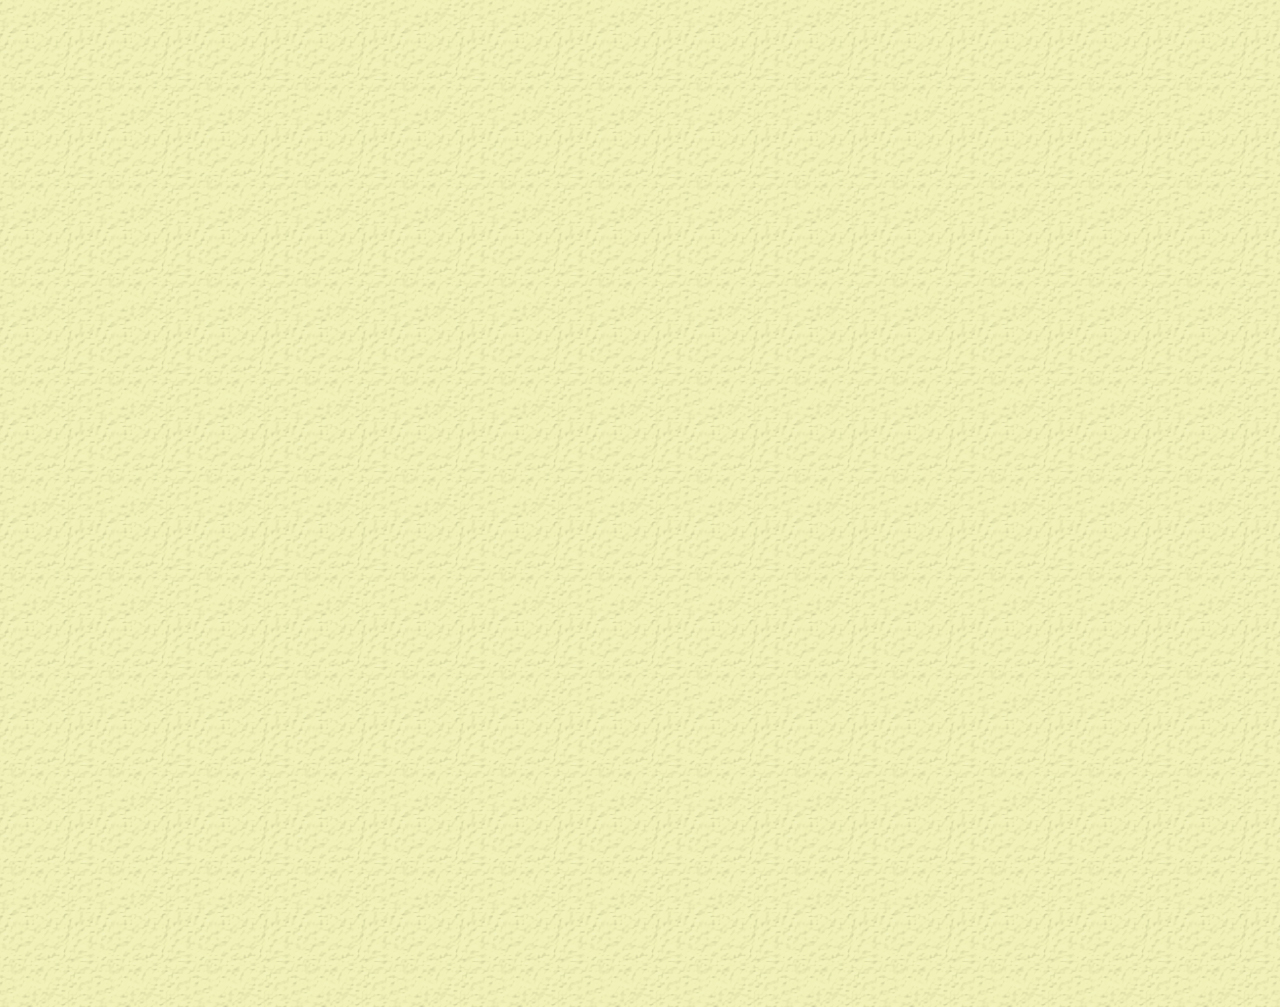 Cream Background Color Pictures to Pin 1280x1007